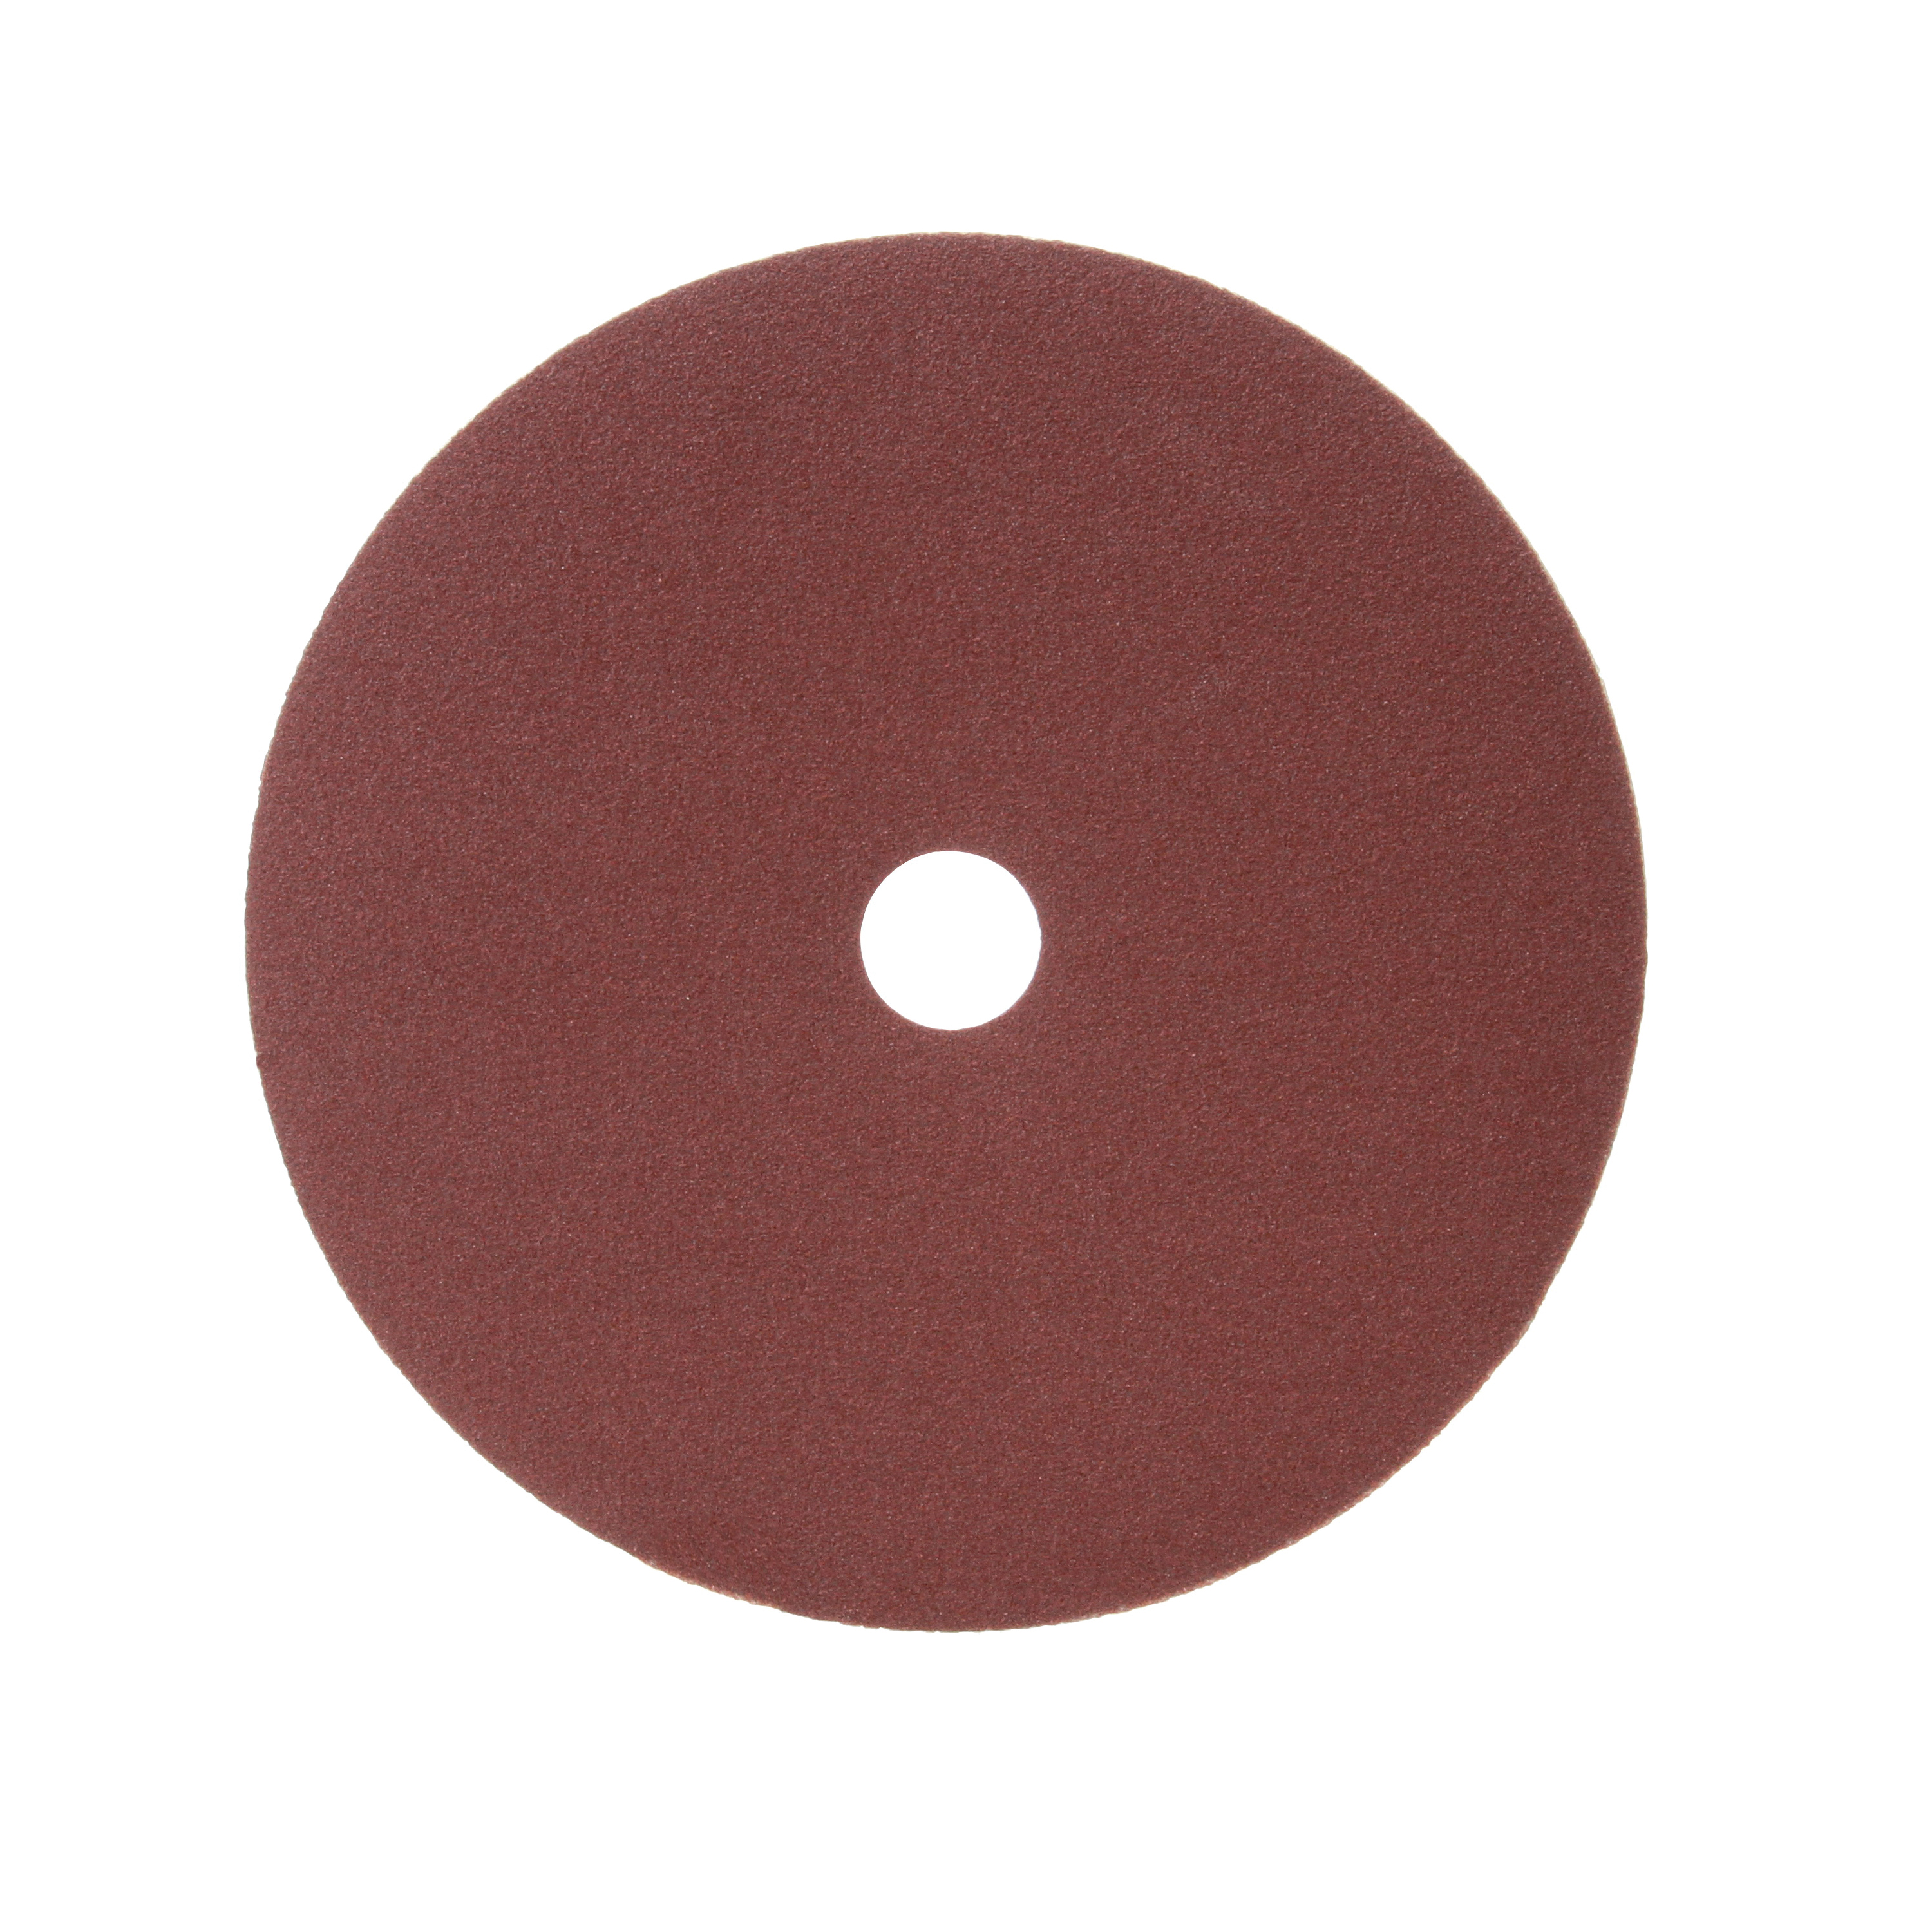 3M™ 051144-01738 381C Close Coated Closed Coated Abrasive Disc, 7 in Dia Disc, 7/8 in Center Hole, 120 Grit, Fine Grade, Aluminum Oxide Abrasive, Arbor Attachment